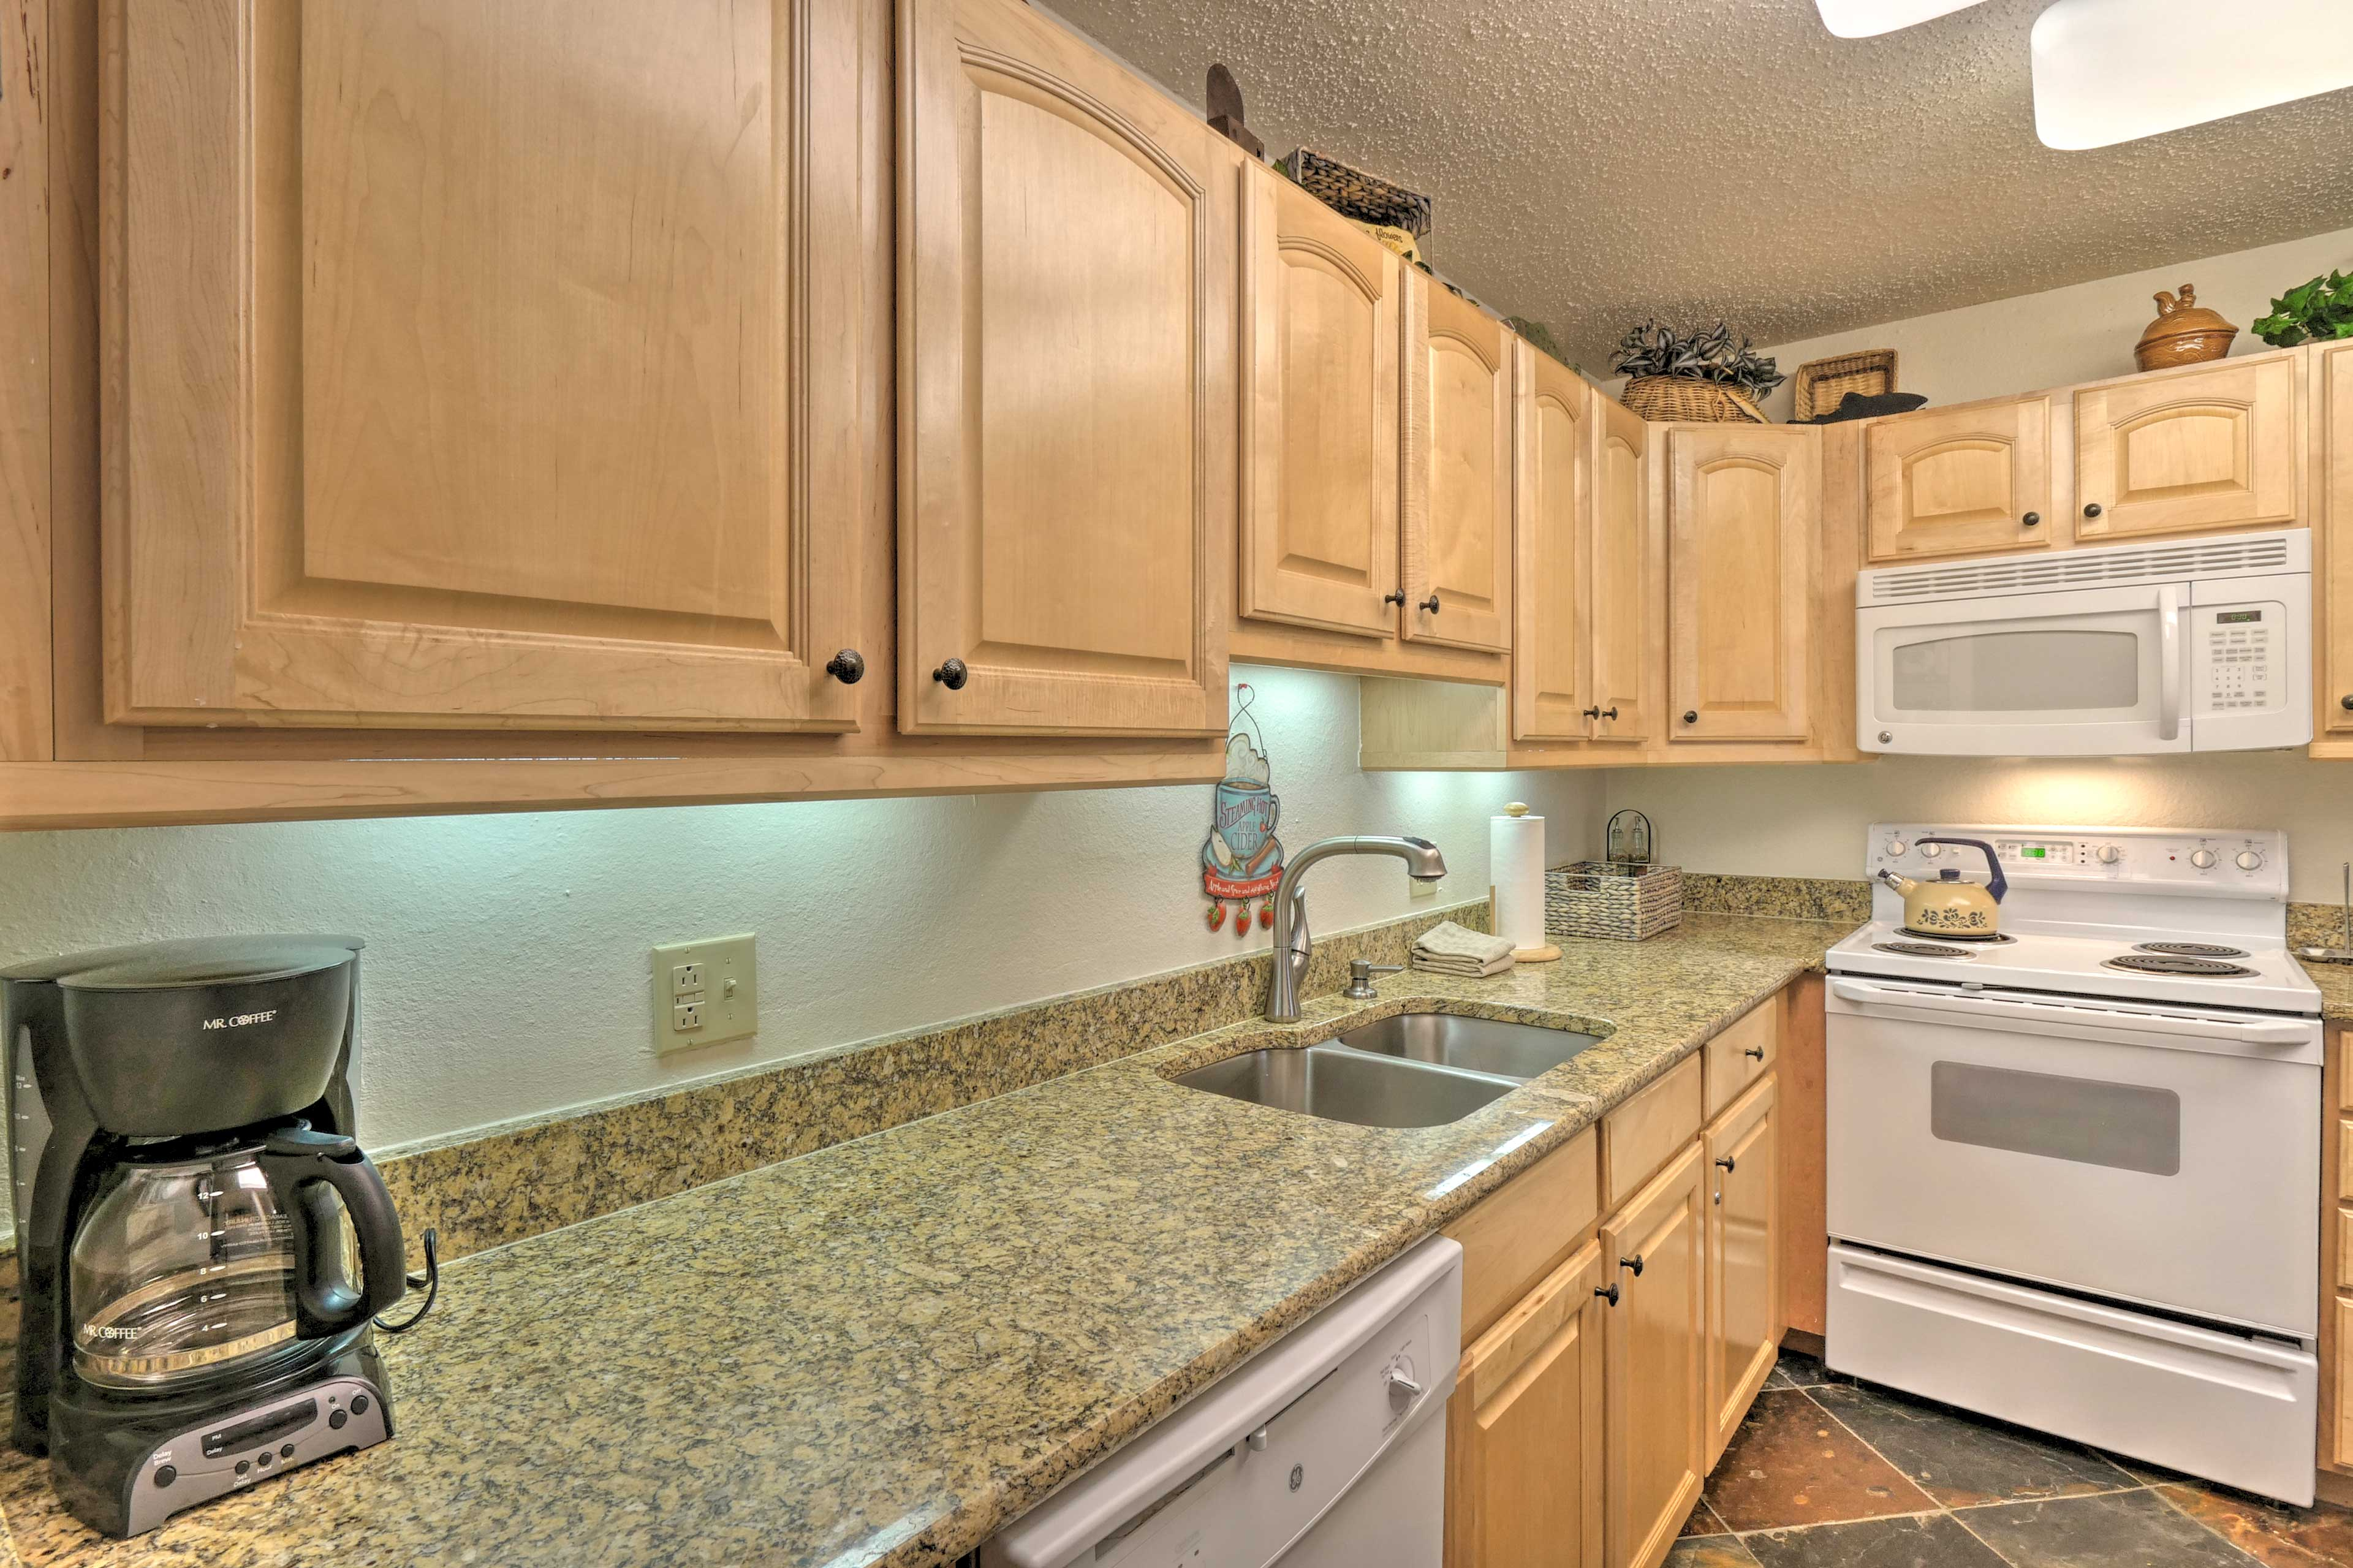 The fully equipped kitchen has options for drip coffee or tea.